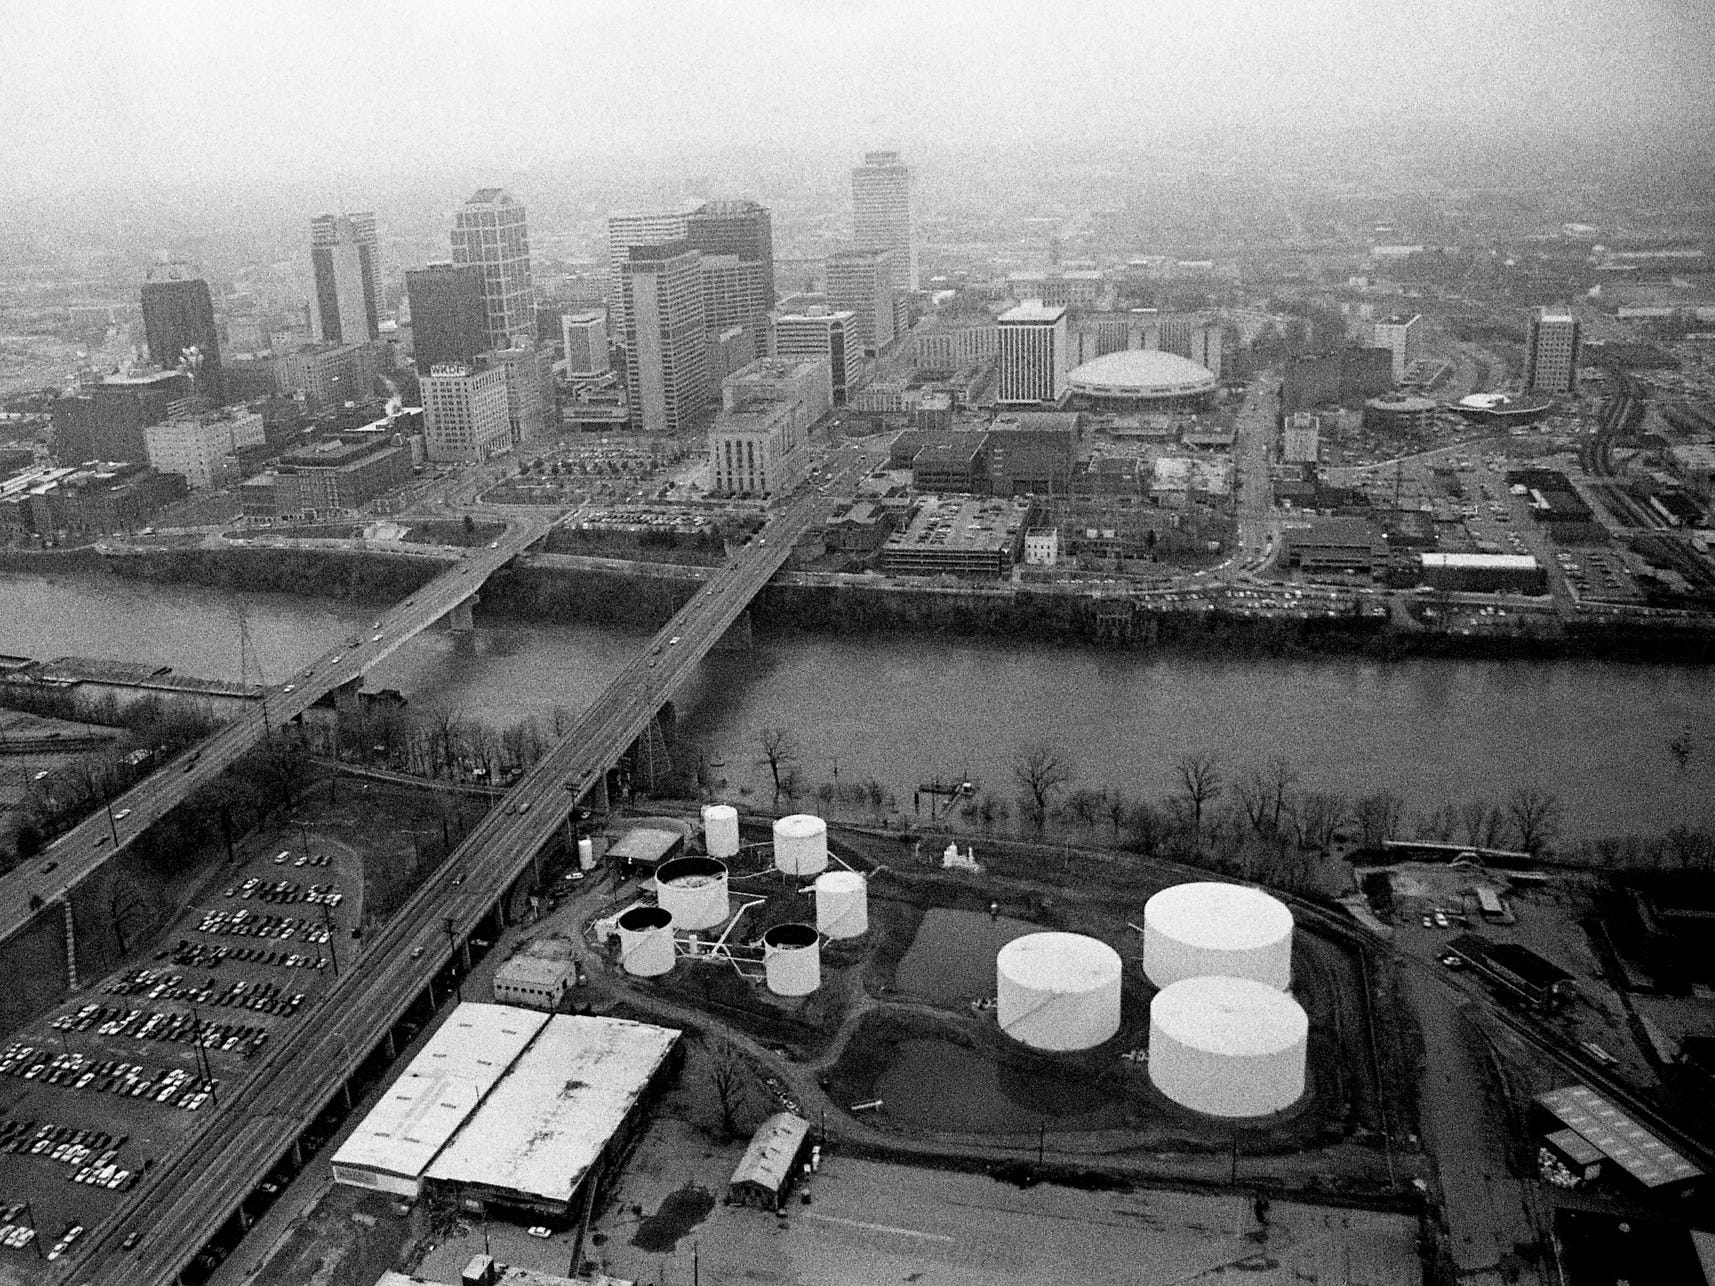 A weekend of almost-constant rainfall which totaled up to 3.32 inches of rain in the area has the Cumberland River very high in downtown Nashville March 6, 1989.